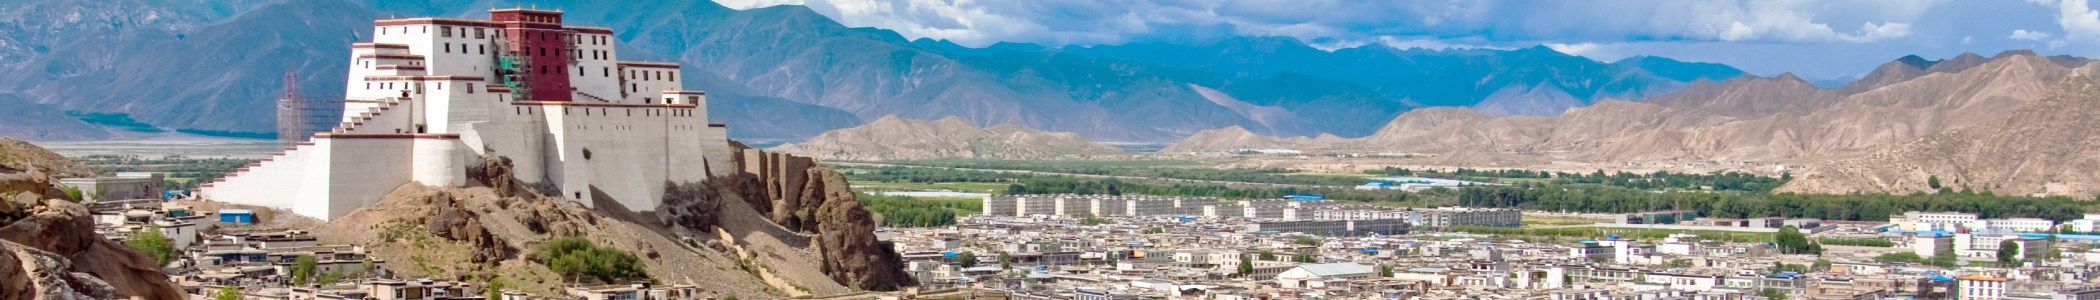 Tibet Lhasa Cultural Tour with Everest Base Camp 7 nights 8 days